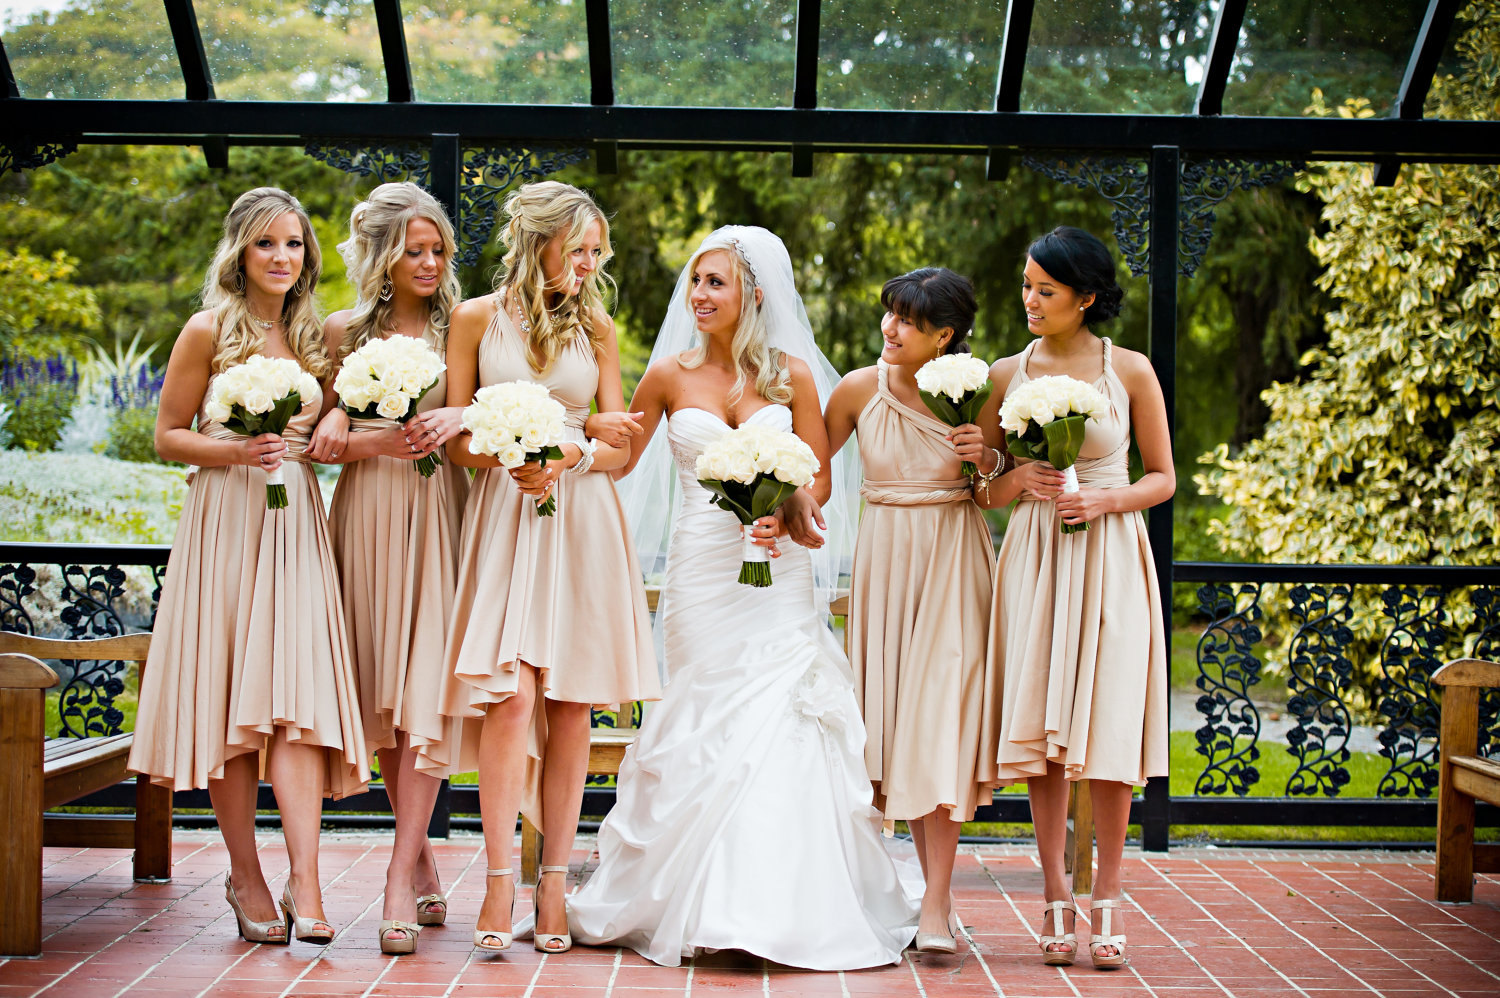 Convertible-bridesmaids-dresses-bridal-party-style-inspiration-from-etsy-nude-2.original